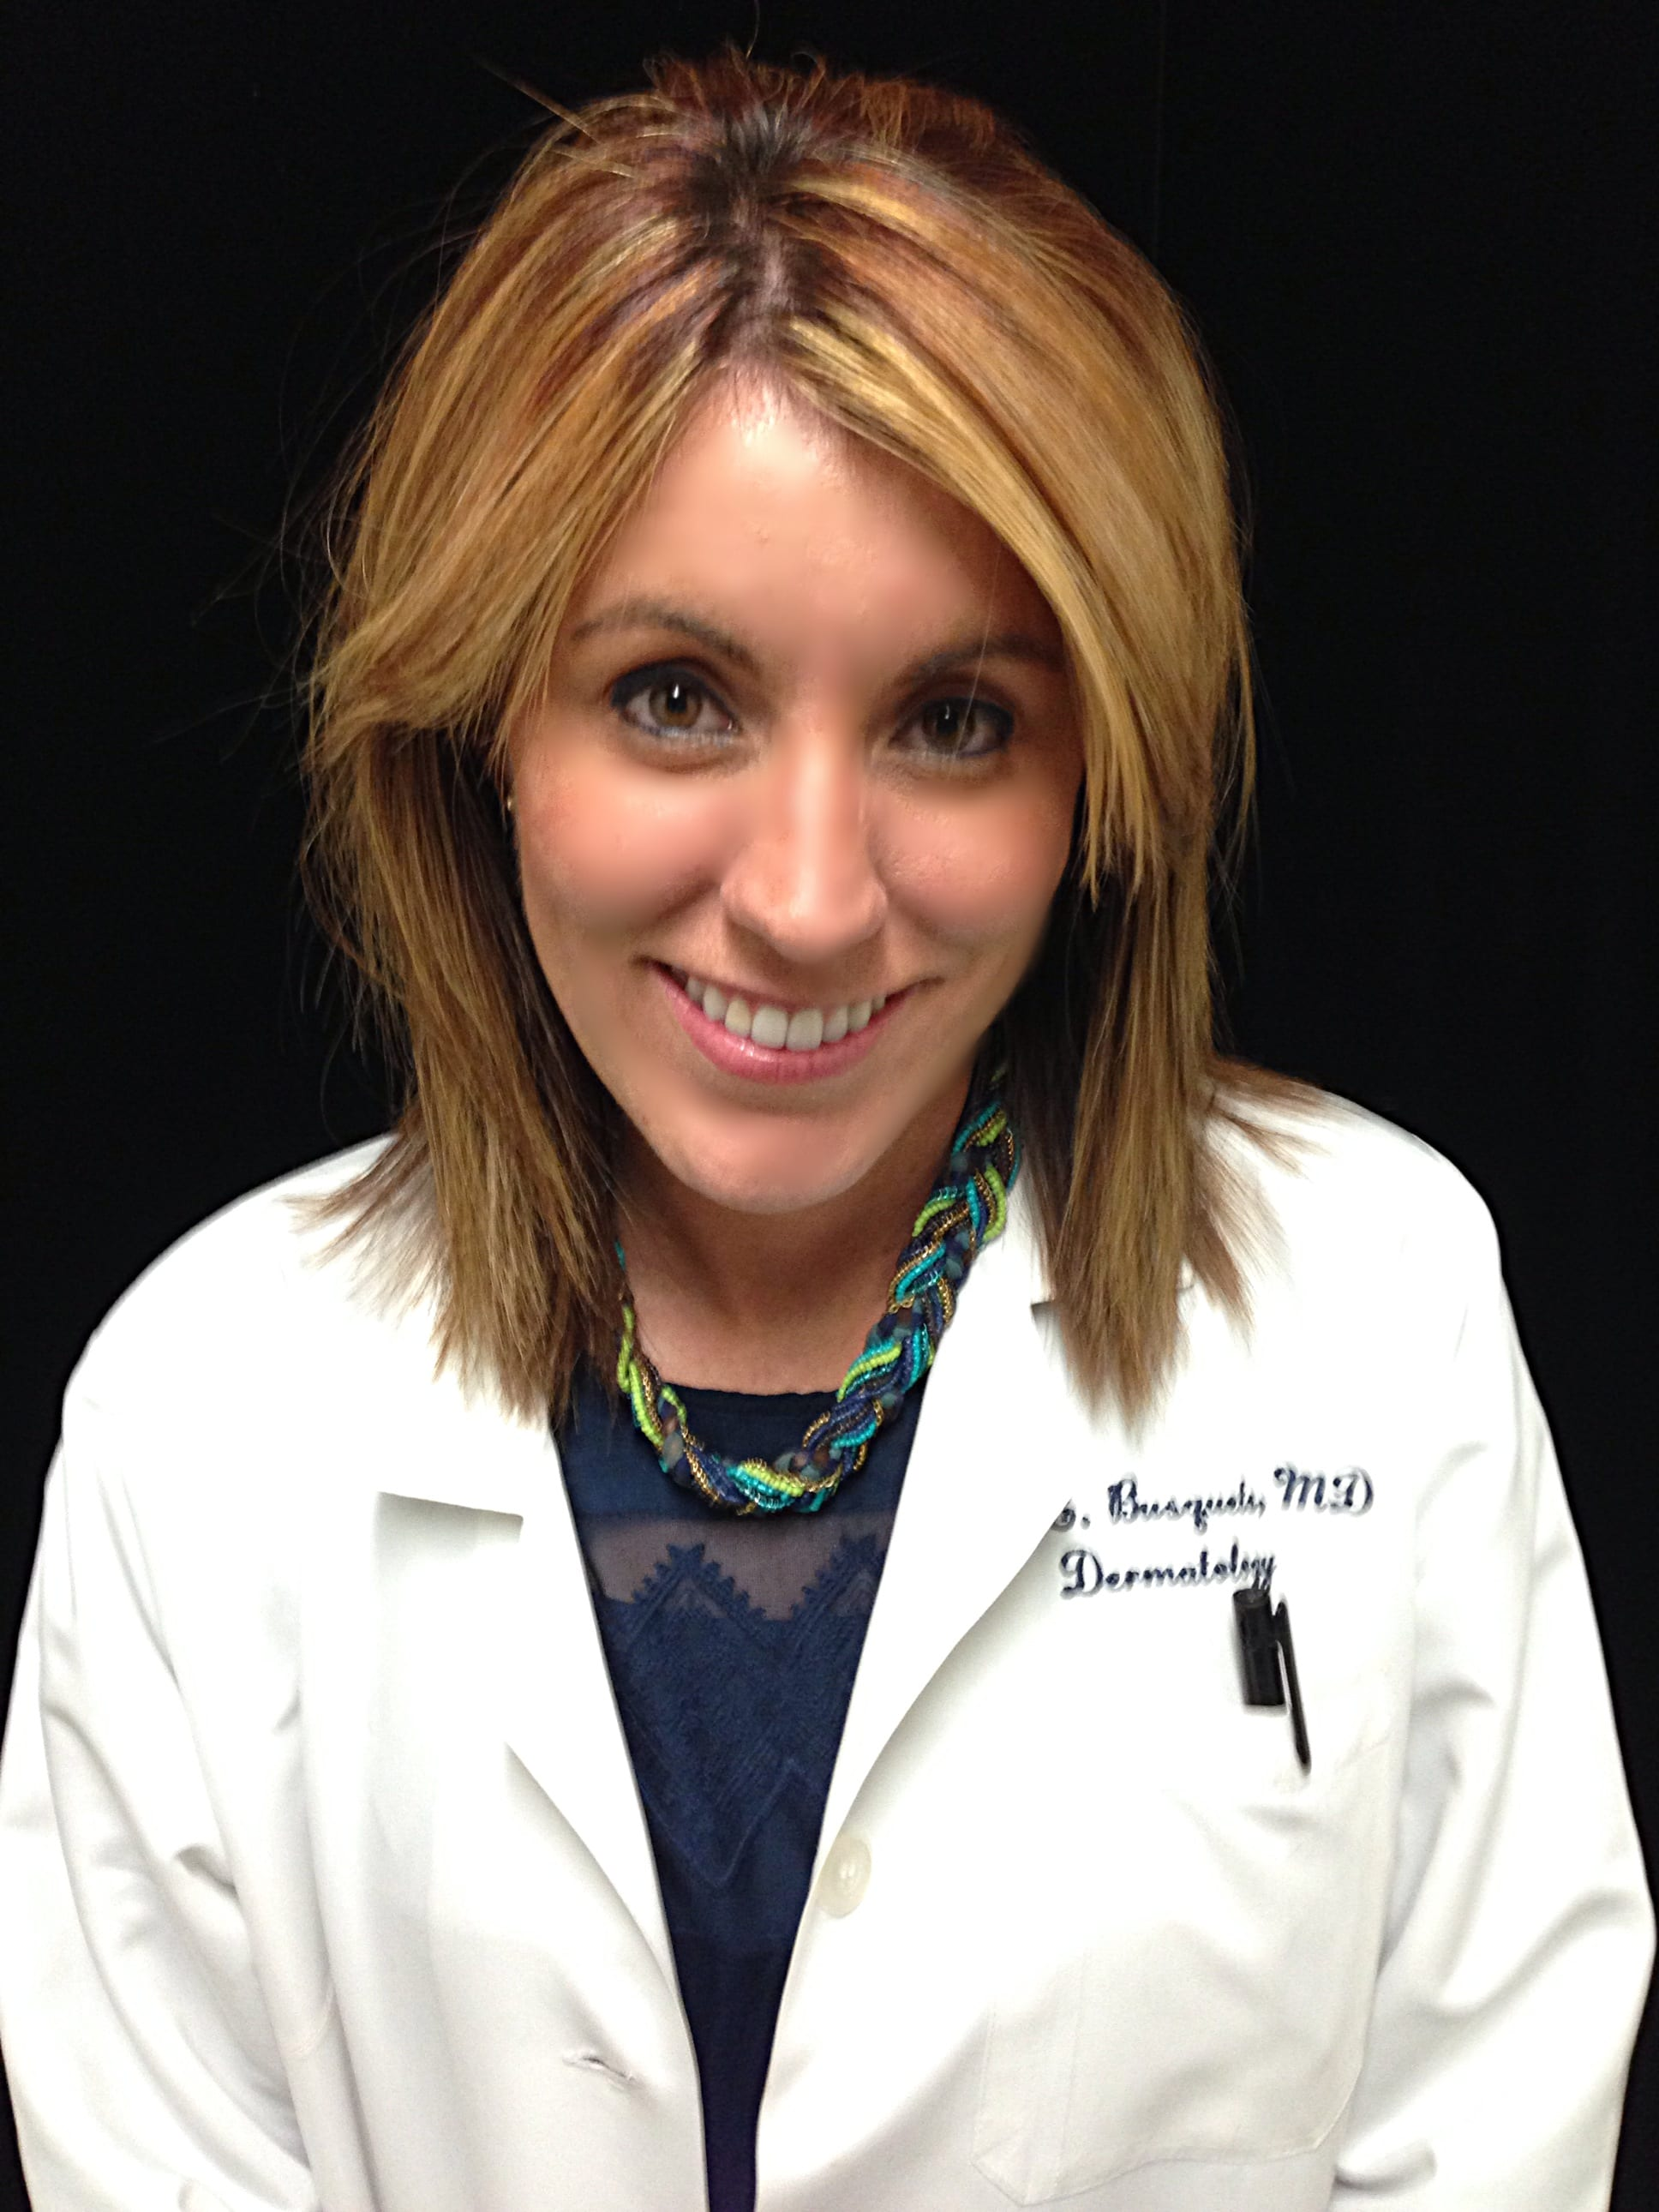 Dr. Ana C Busquets MD